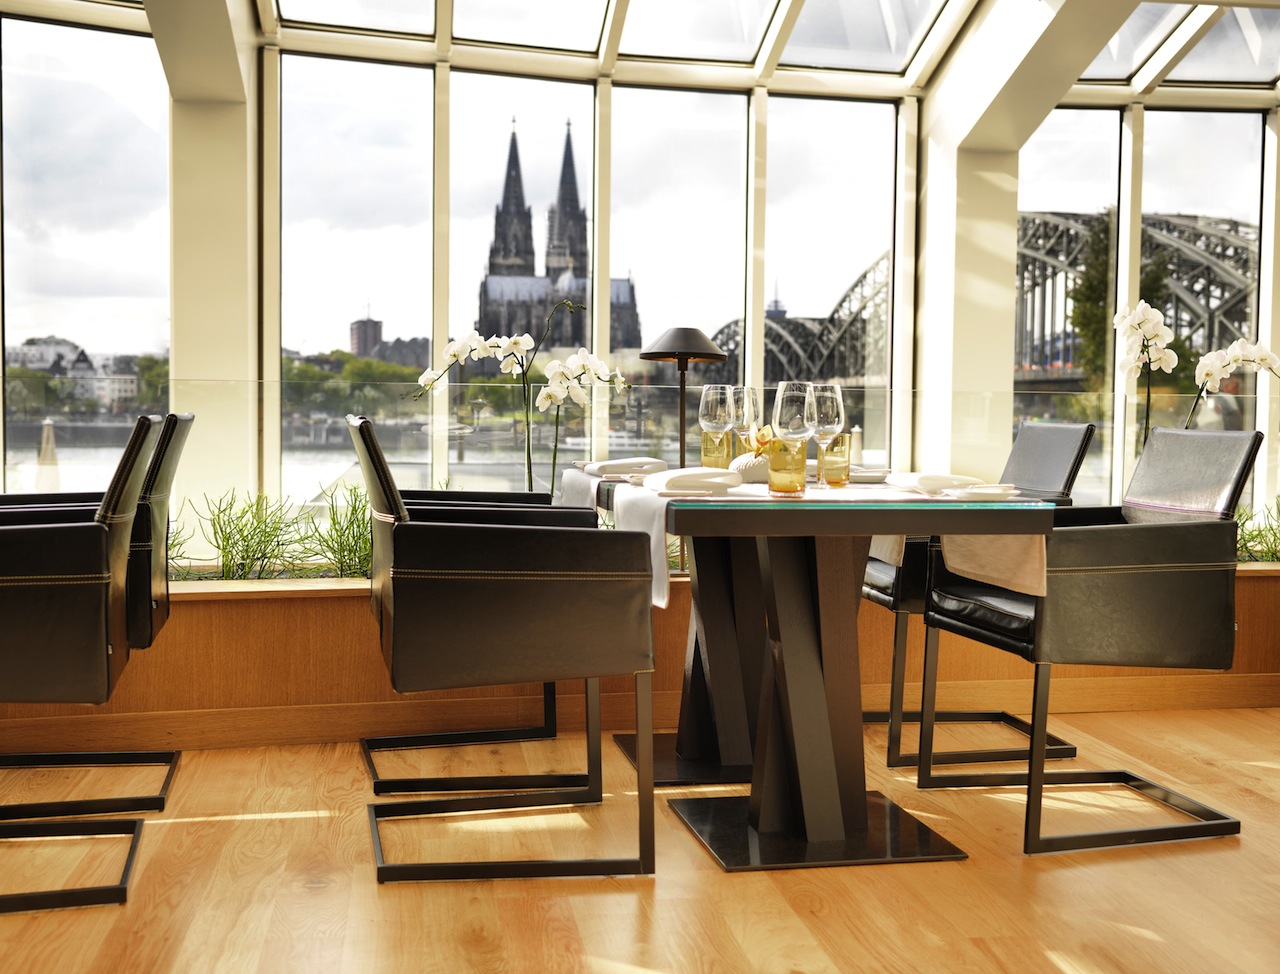 Glashaus Restaurant & Bar - Domblick / ©Hyatt Regency Köln